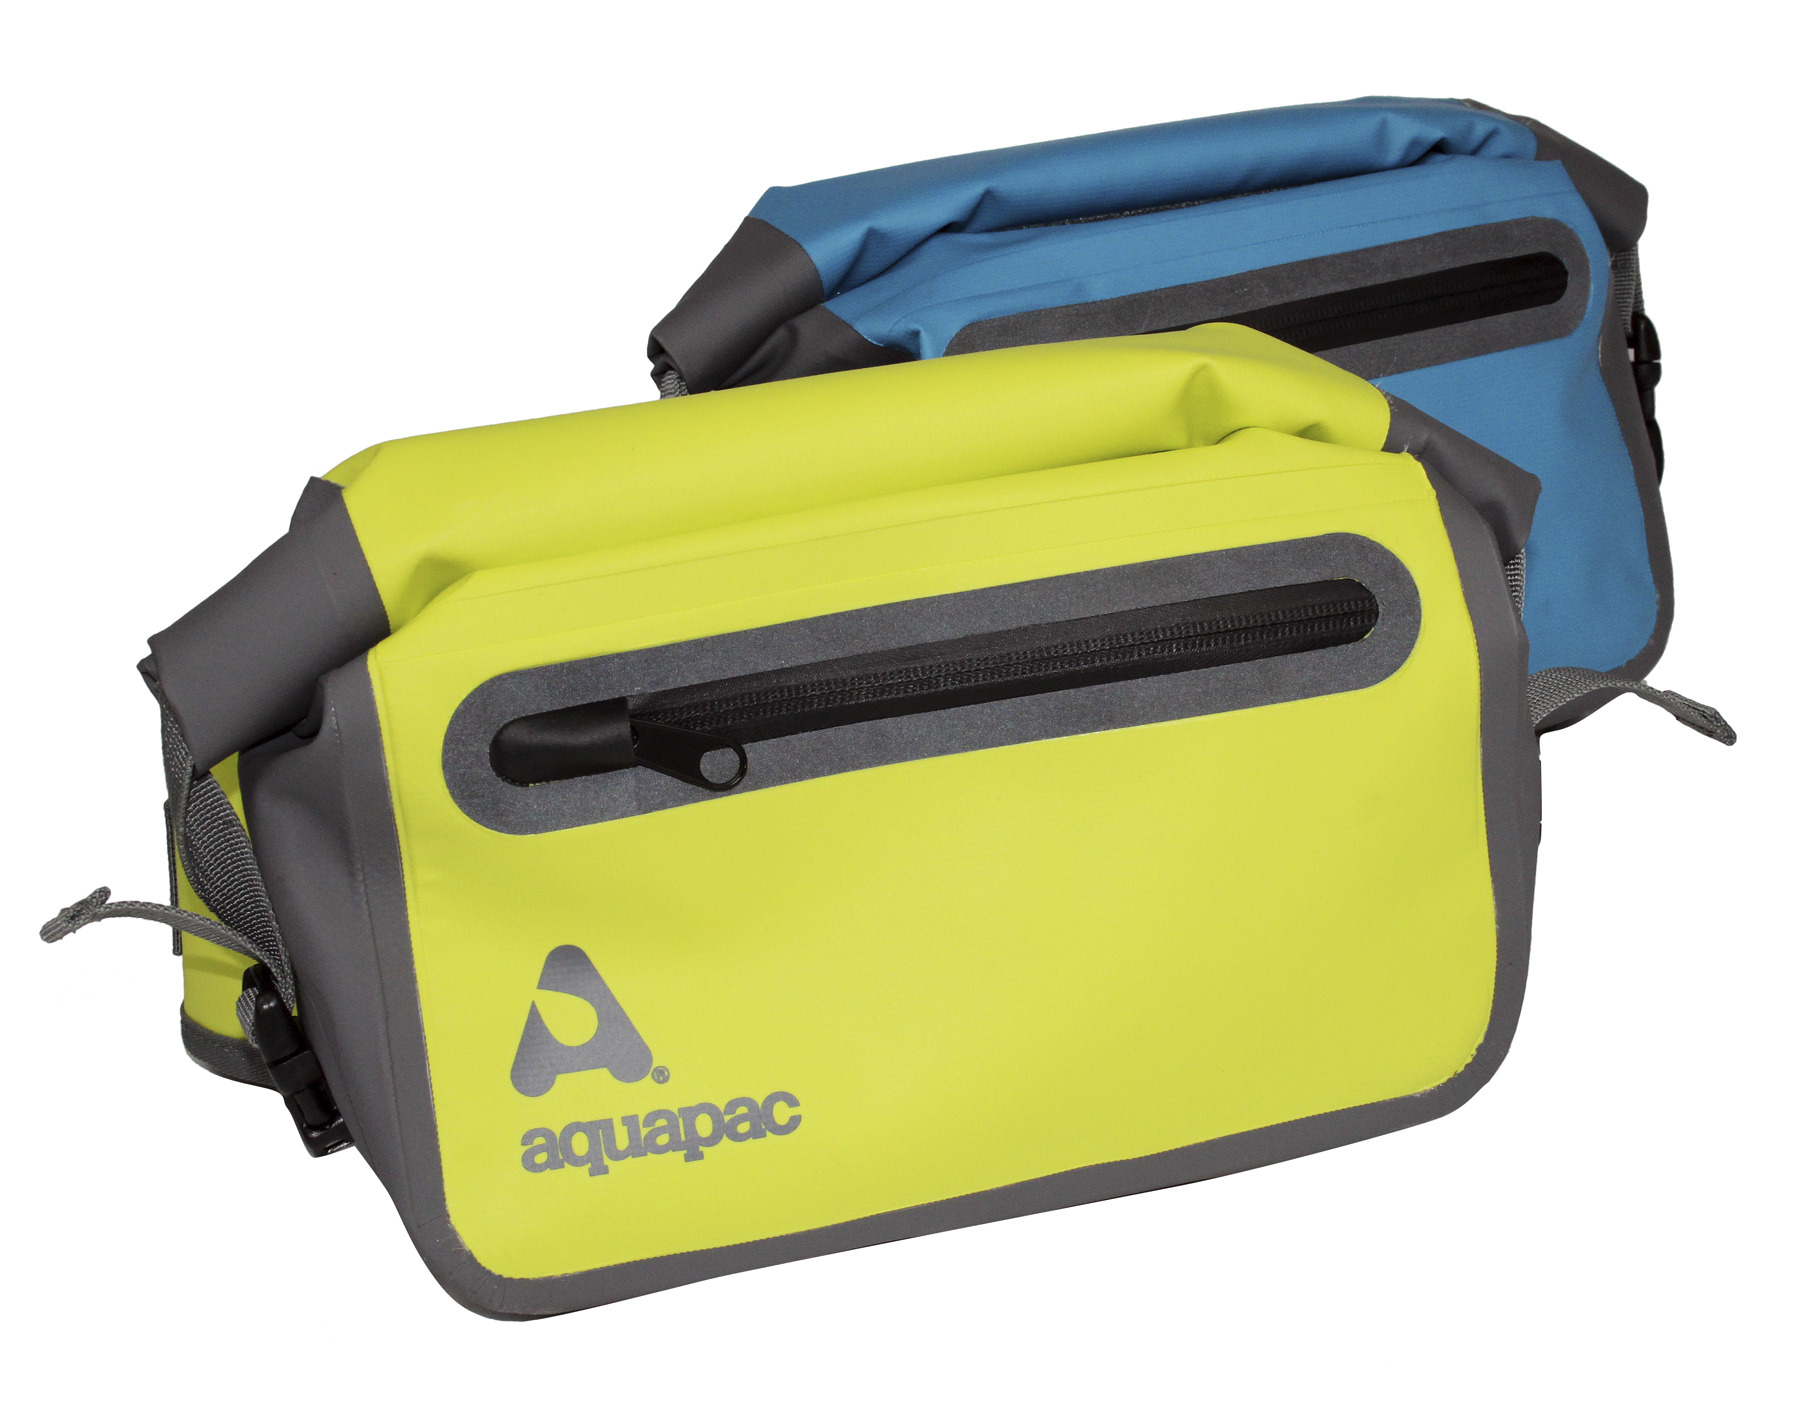 Aquapac trailproof™ waist pack   Review by Sian Sykes